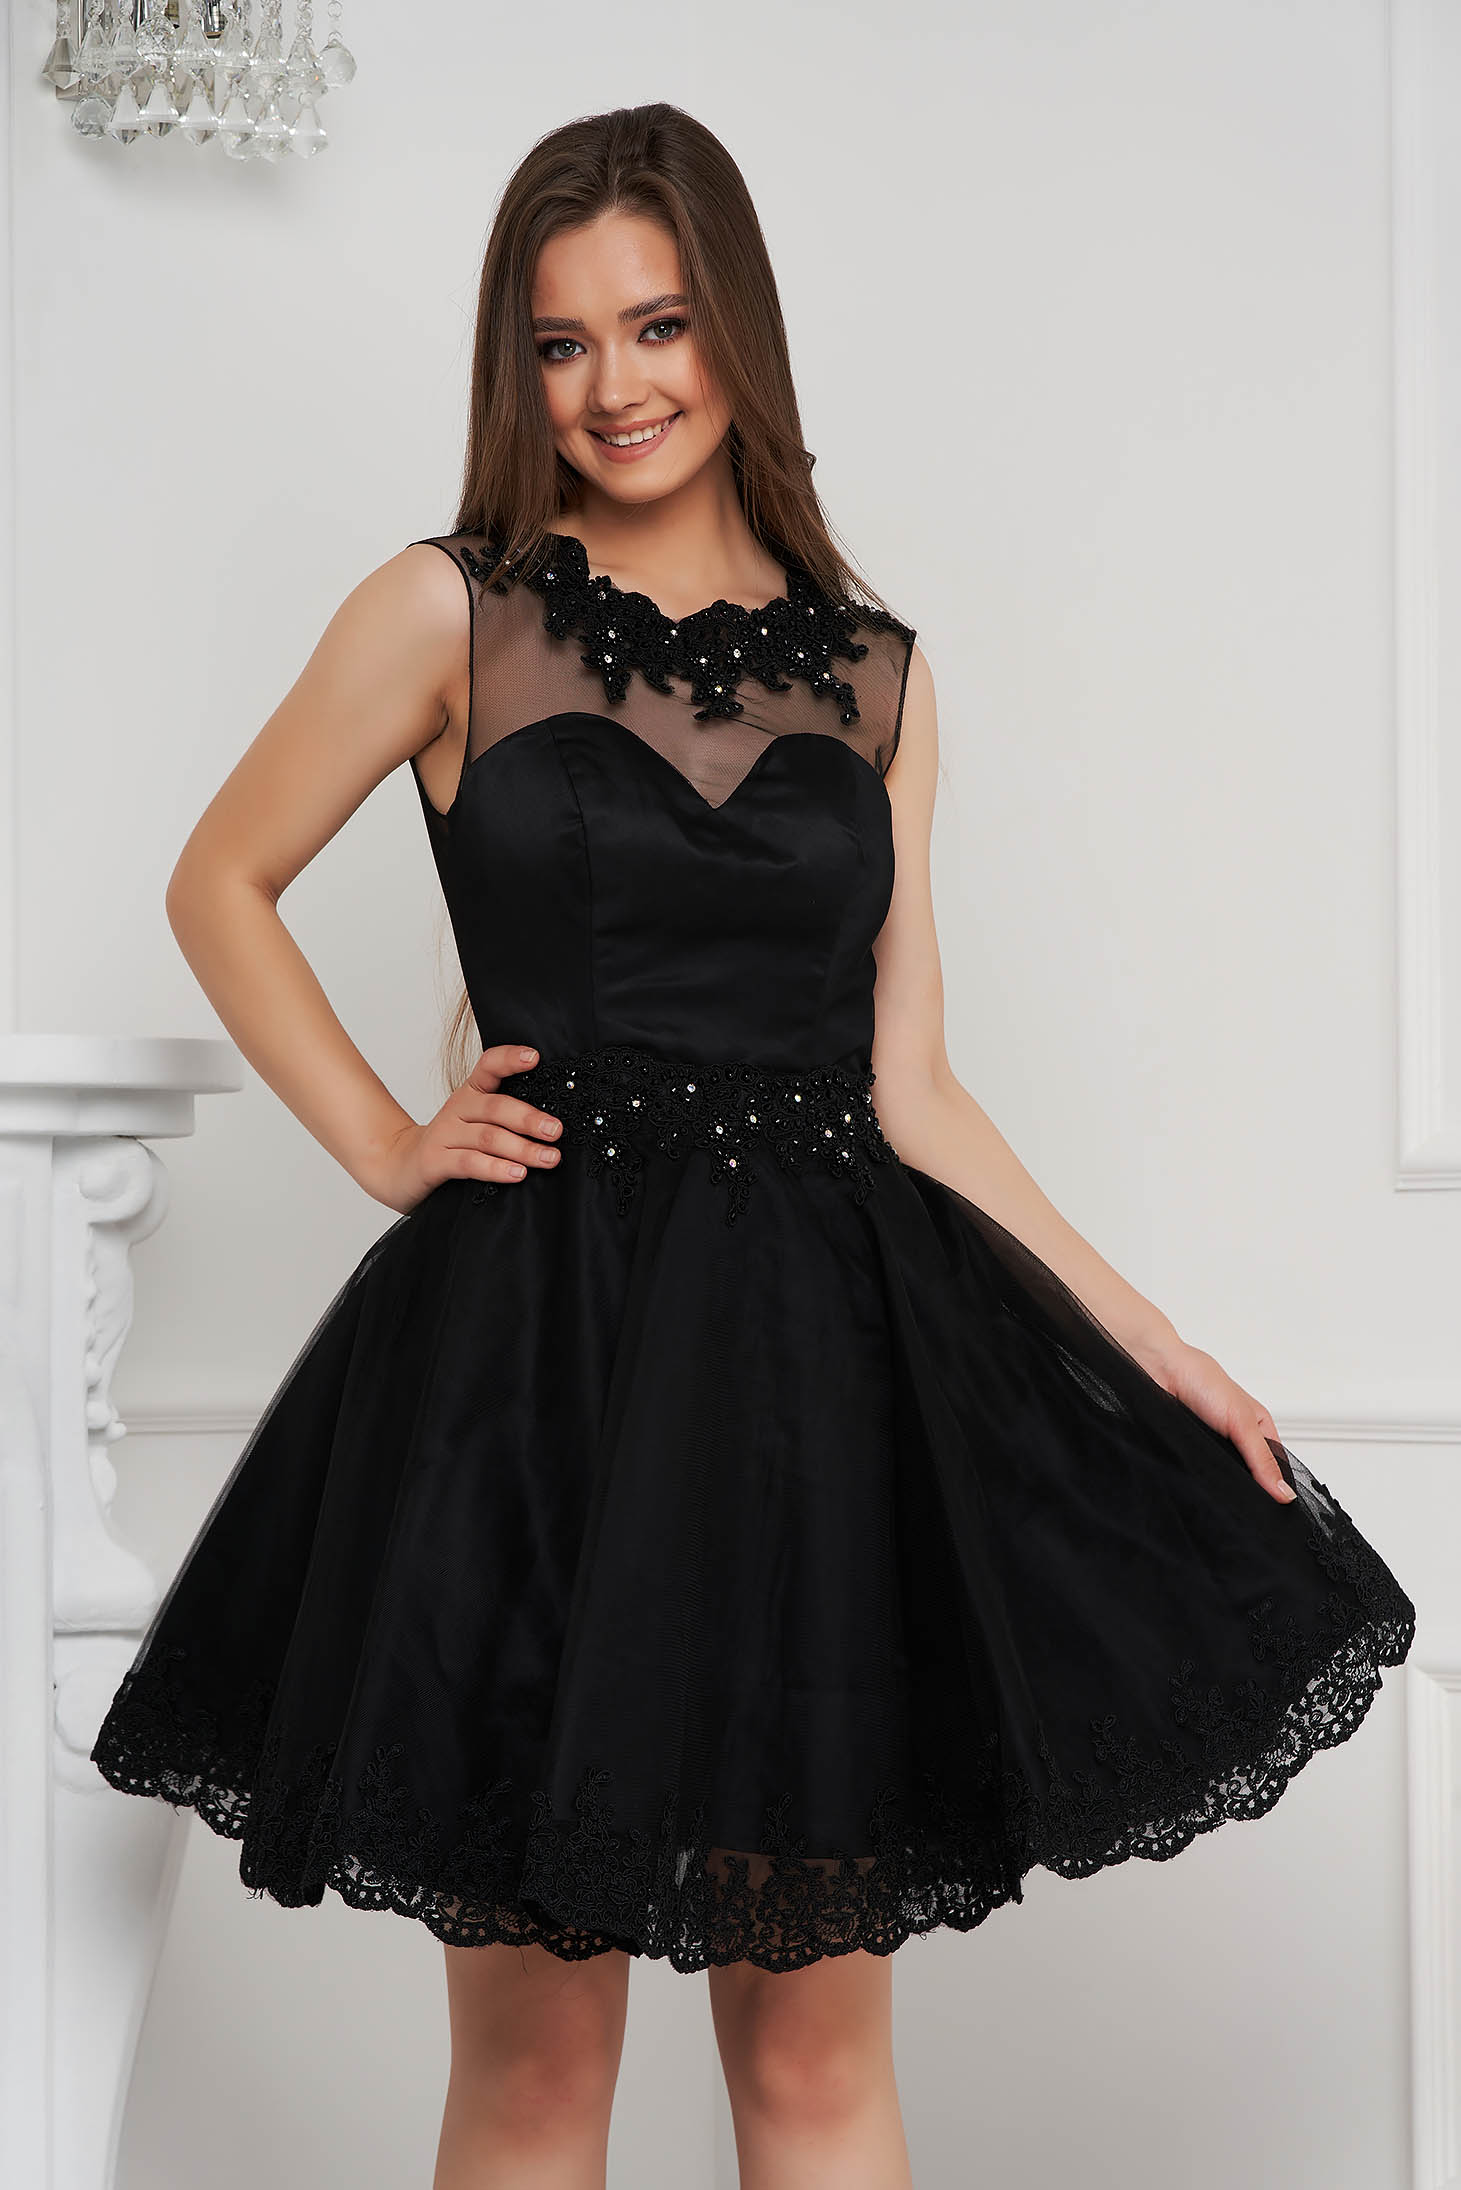 Black dress short cut cloche from tulle with pearls with embellished accessories